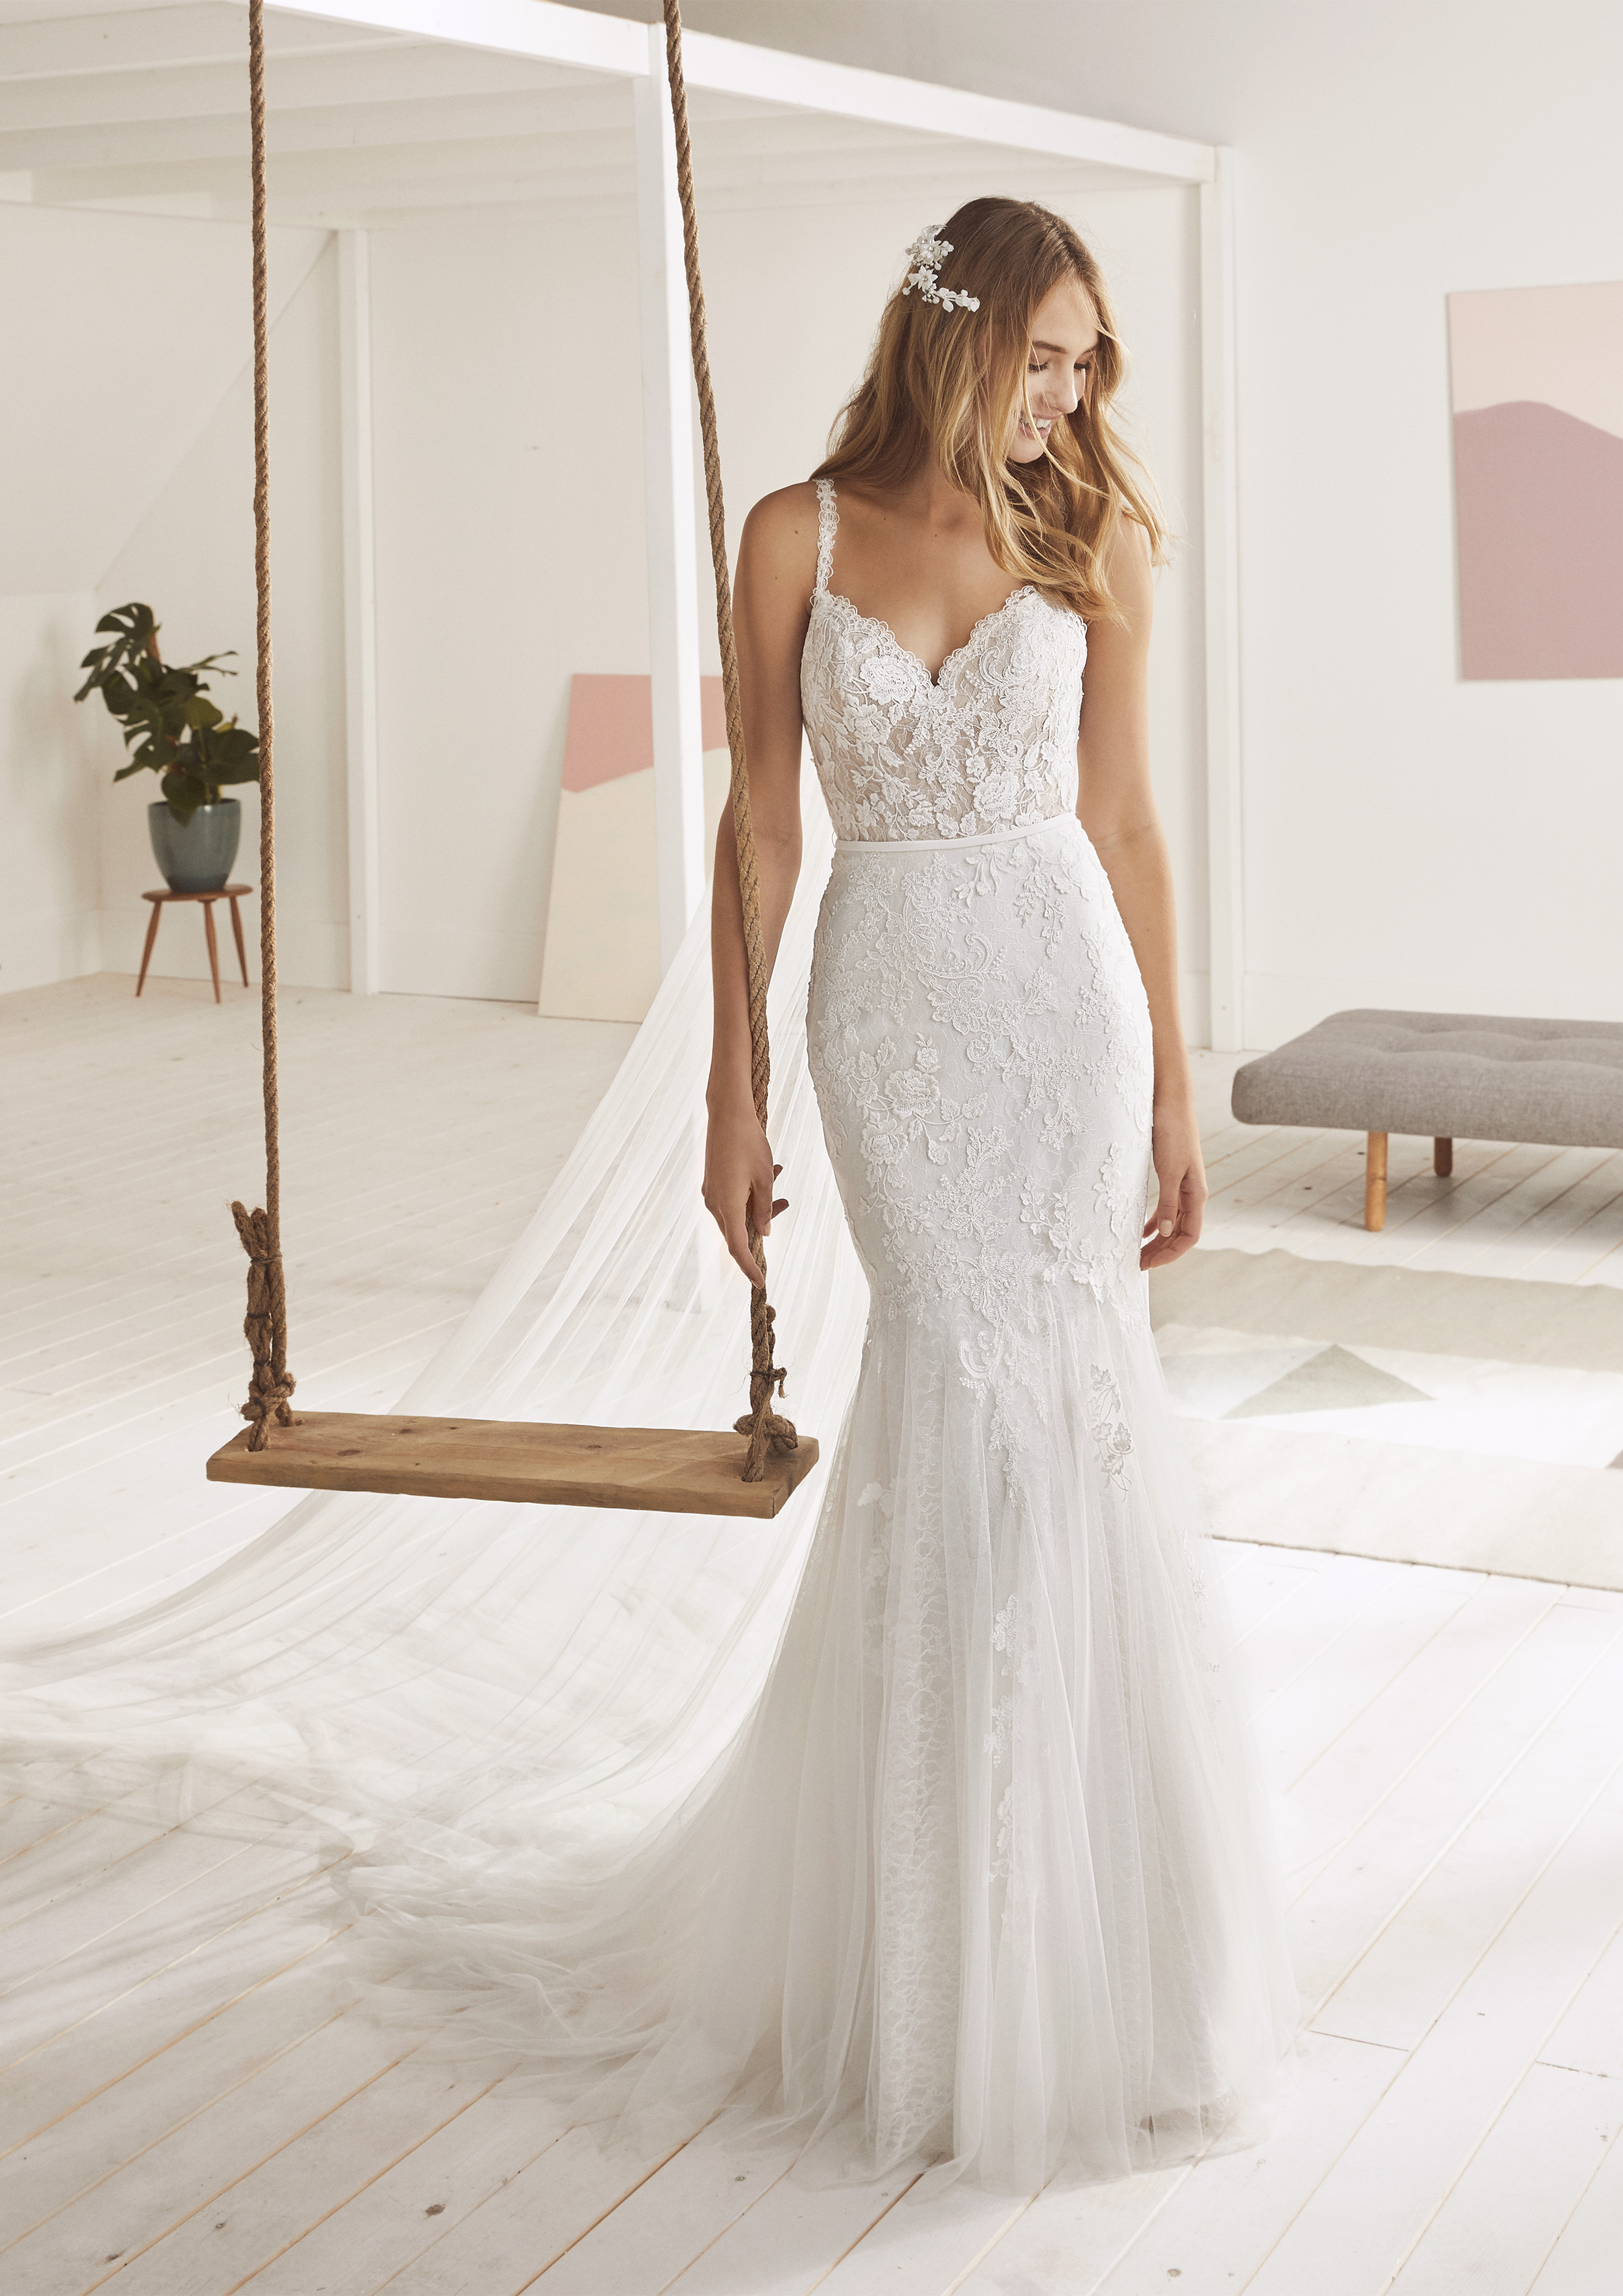 Pronovias White One Obelia £1,150